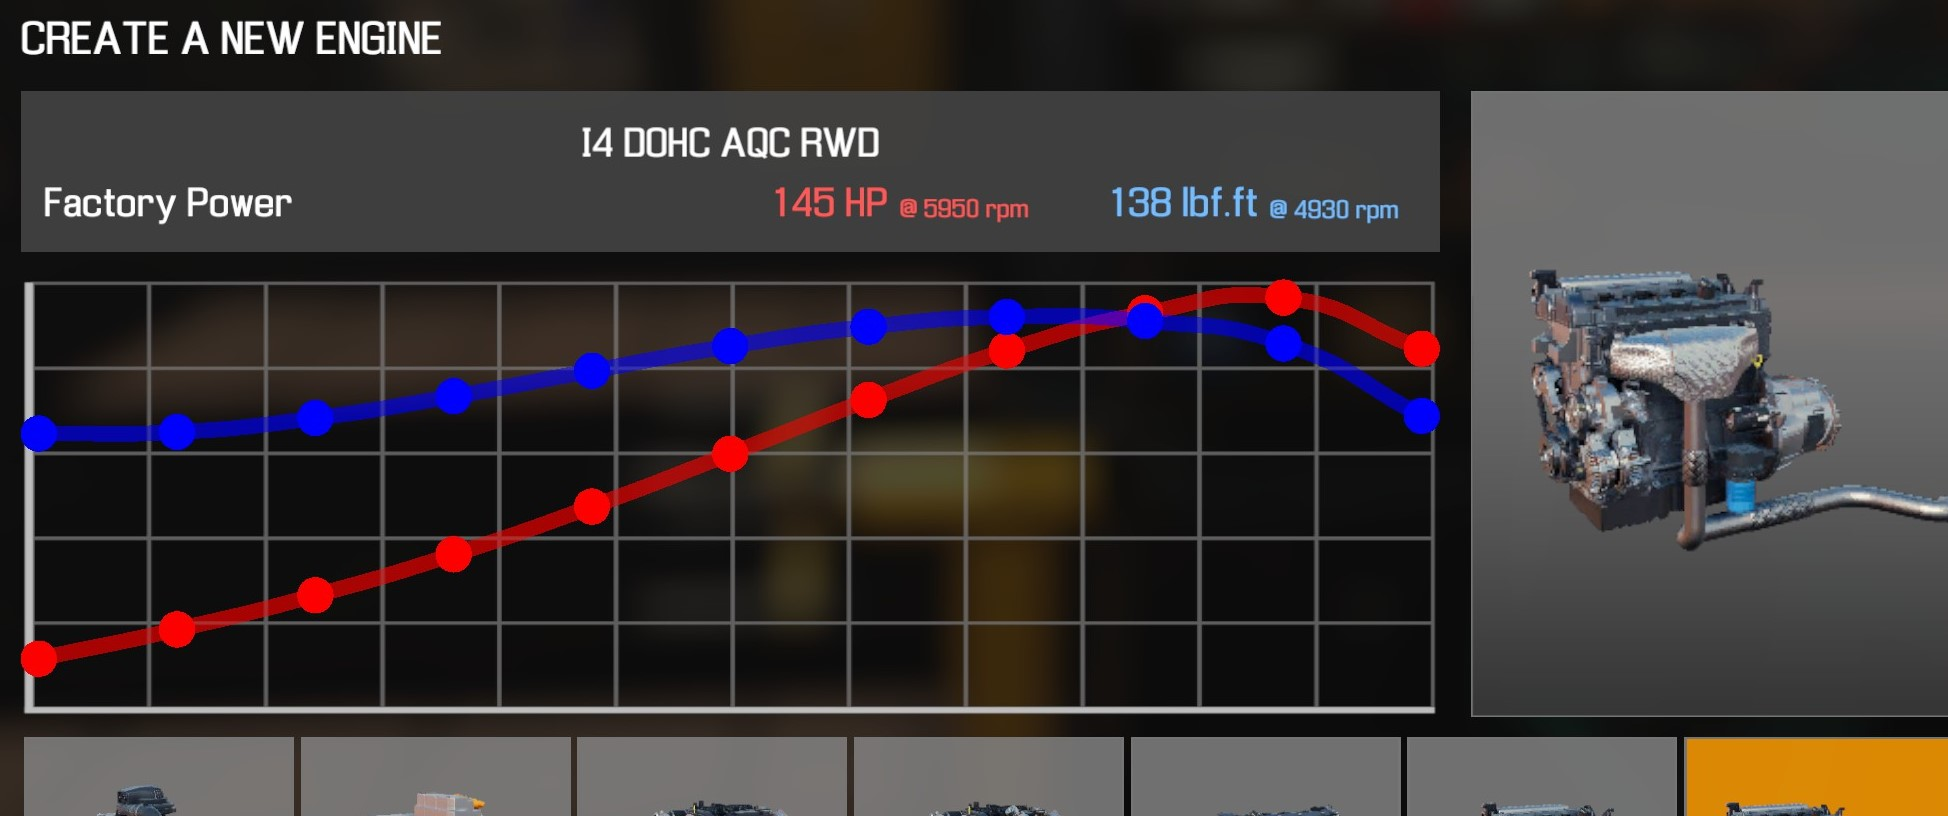 Car Mechanic Simulator 2021 - How to Buy Engine Parts and All Engines in Game Information - I4 DOHC AQC RWD - 118AD48